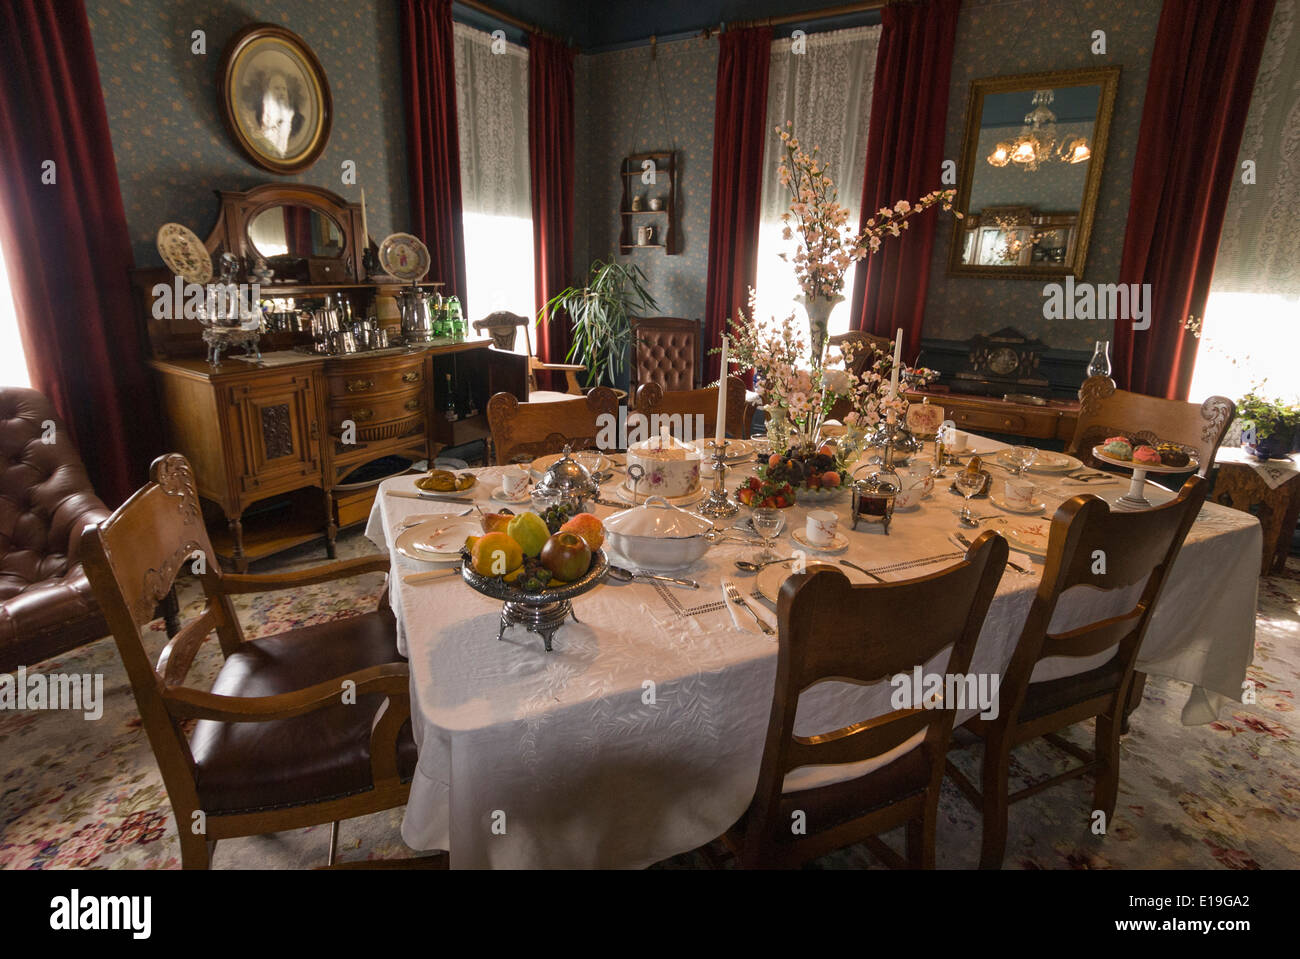 Elk203 1038 Canada, British Columbia, New Westminster, Irving House, 1865,  Dining Room